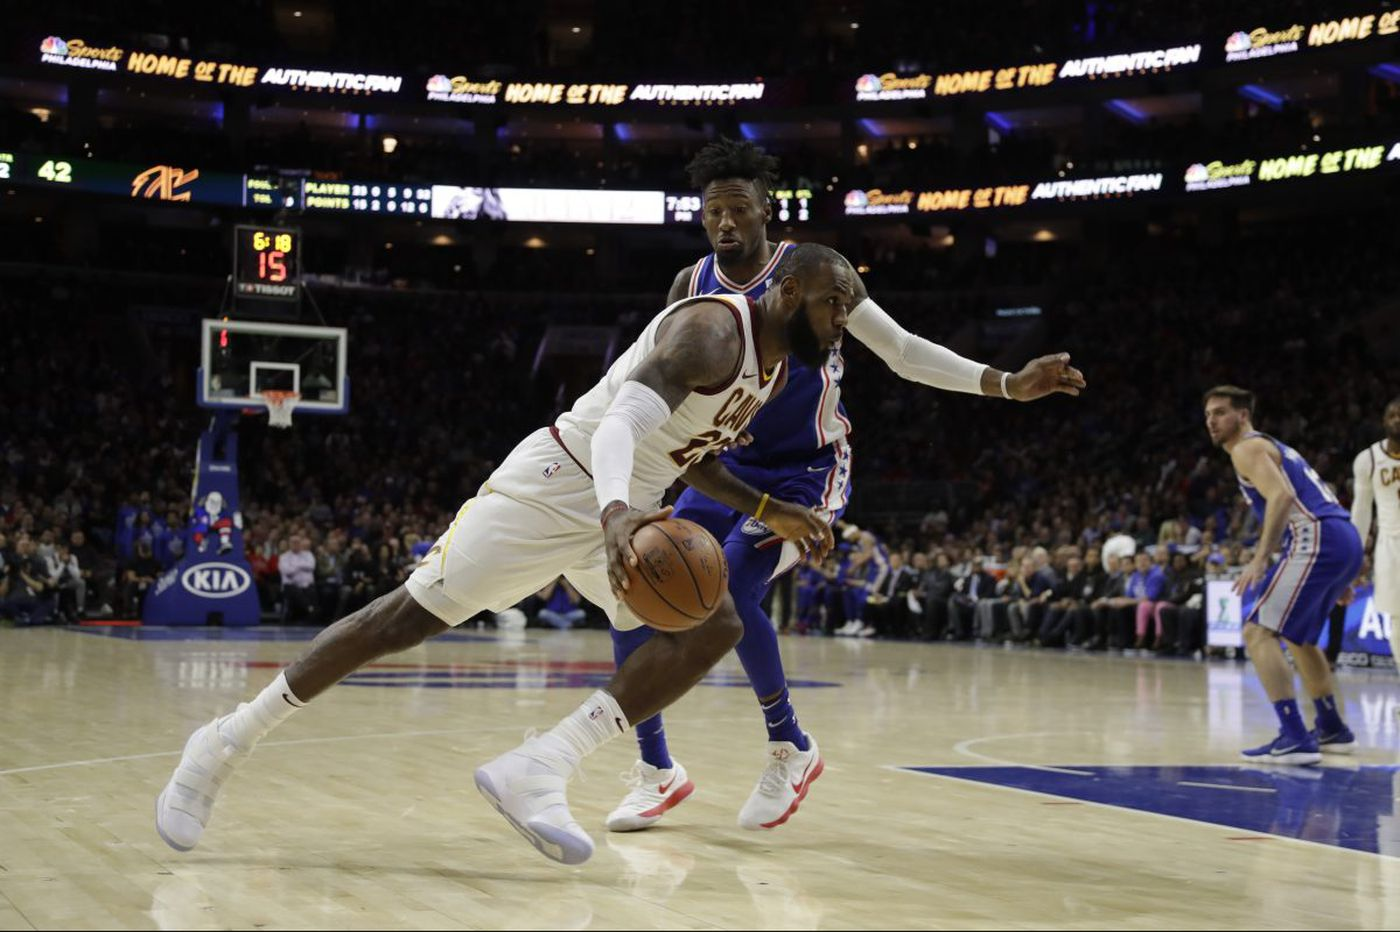 Sixers-Cavaliers: Attempting to win without Joel Embiid